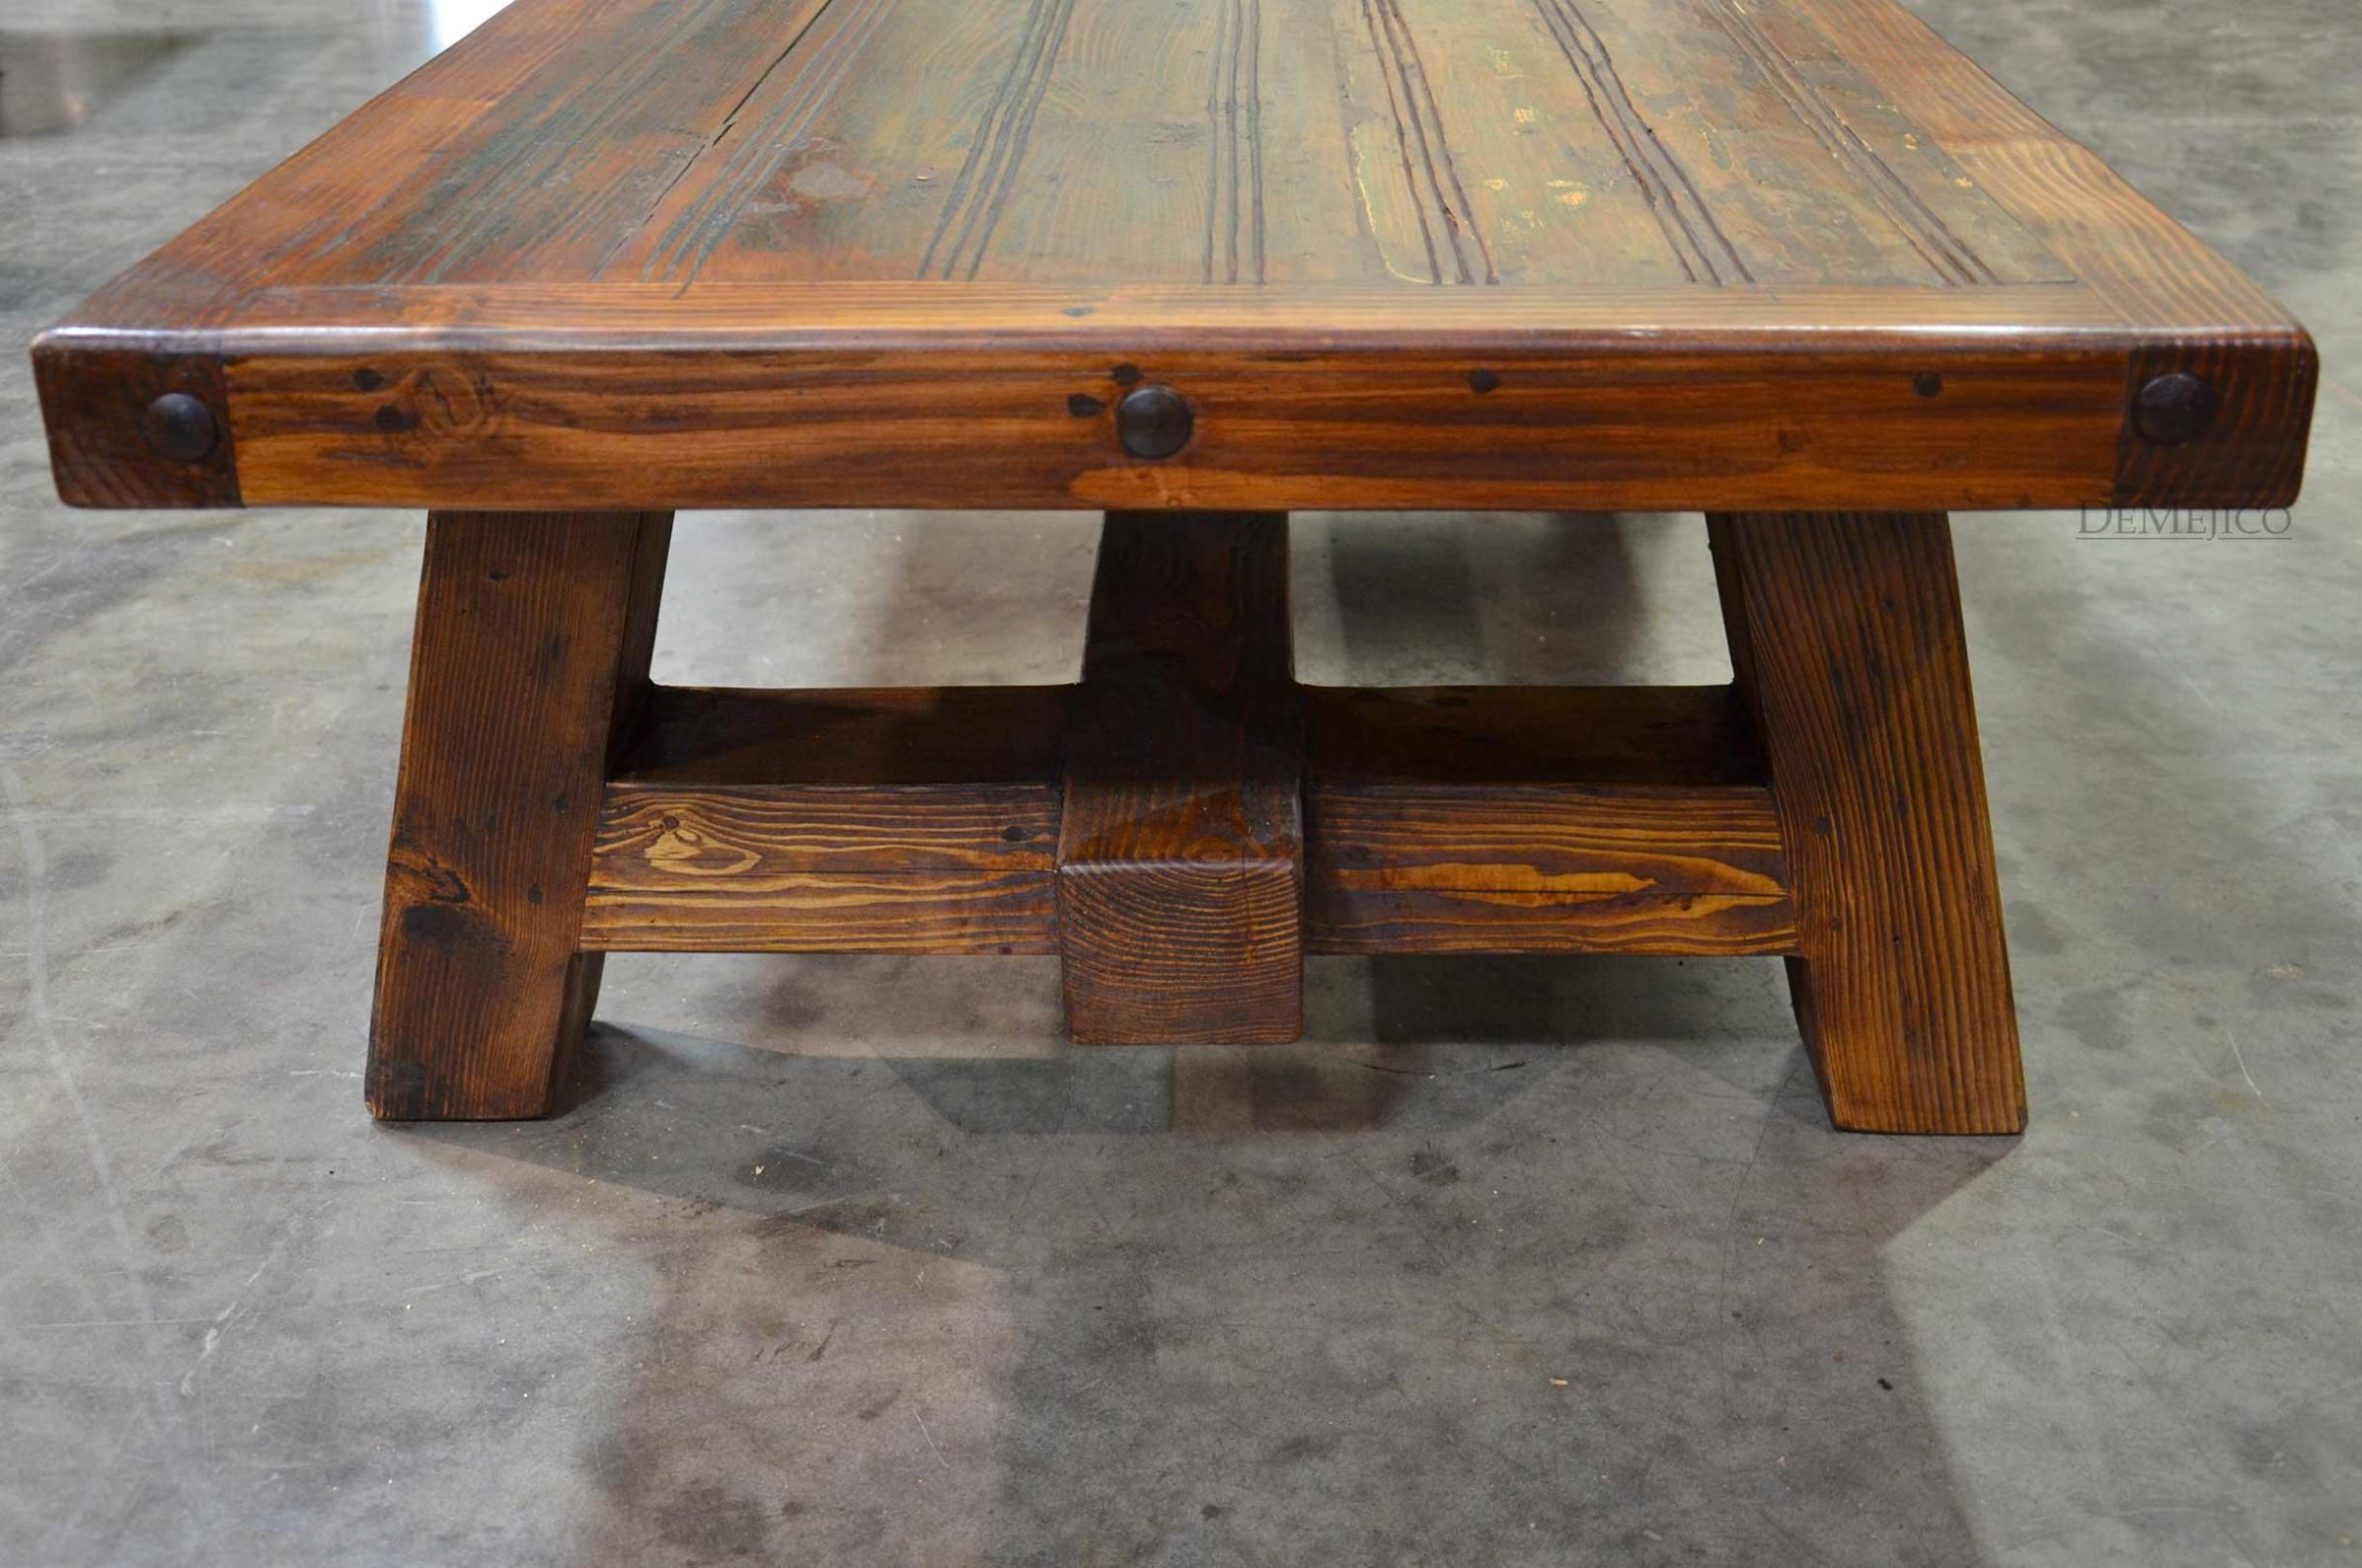 Large Reclaimed Wood Coffee Table Popularity Shower Image Of Salvaged Black Round Dark M Square Wood Coffee Table Reclaimed Wood Coffee Table Coffee Table Wood [ 1589 x 2393 Pixel ]